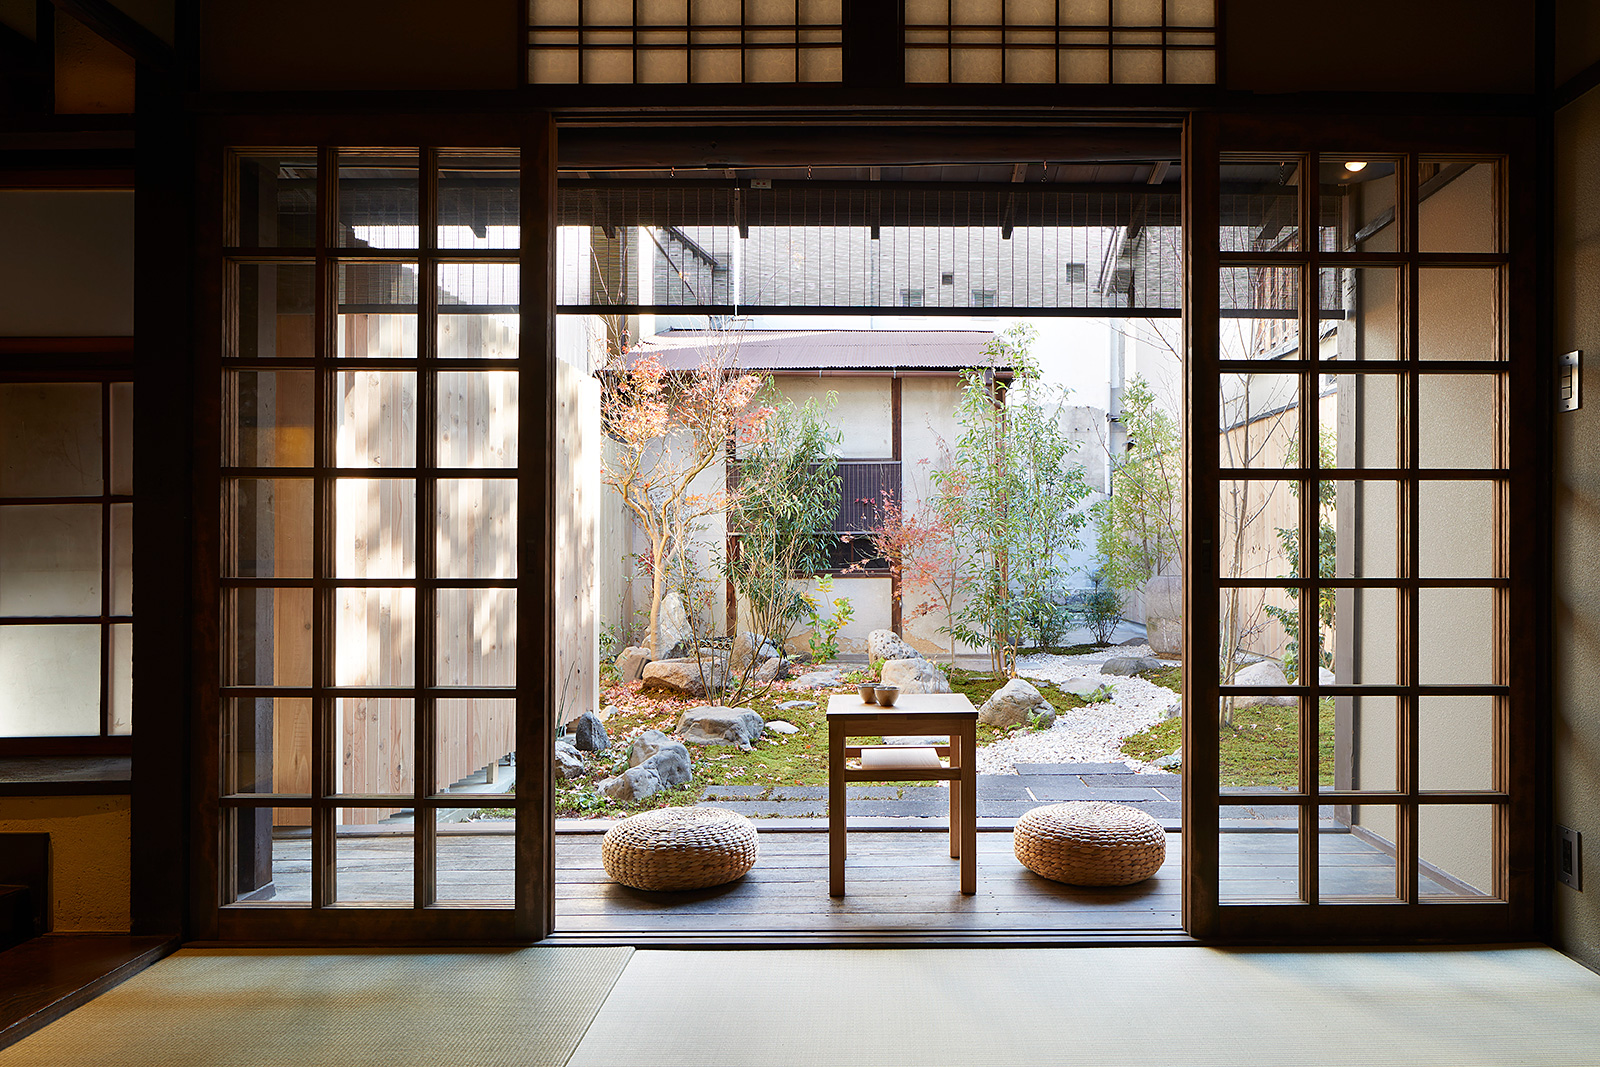 Blending Japanese traditional and modern architecture this Kyoto